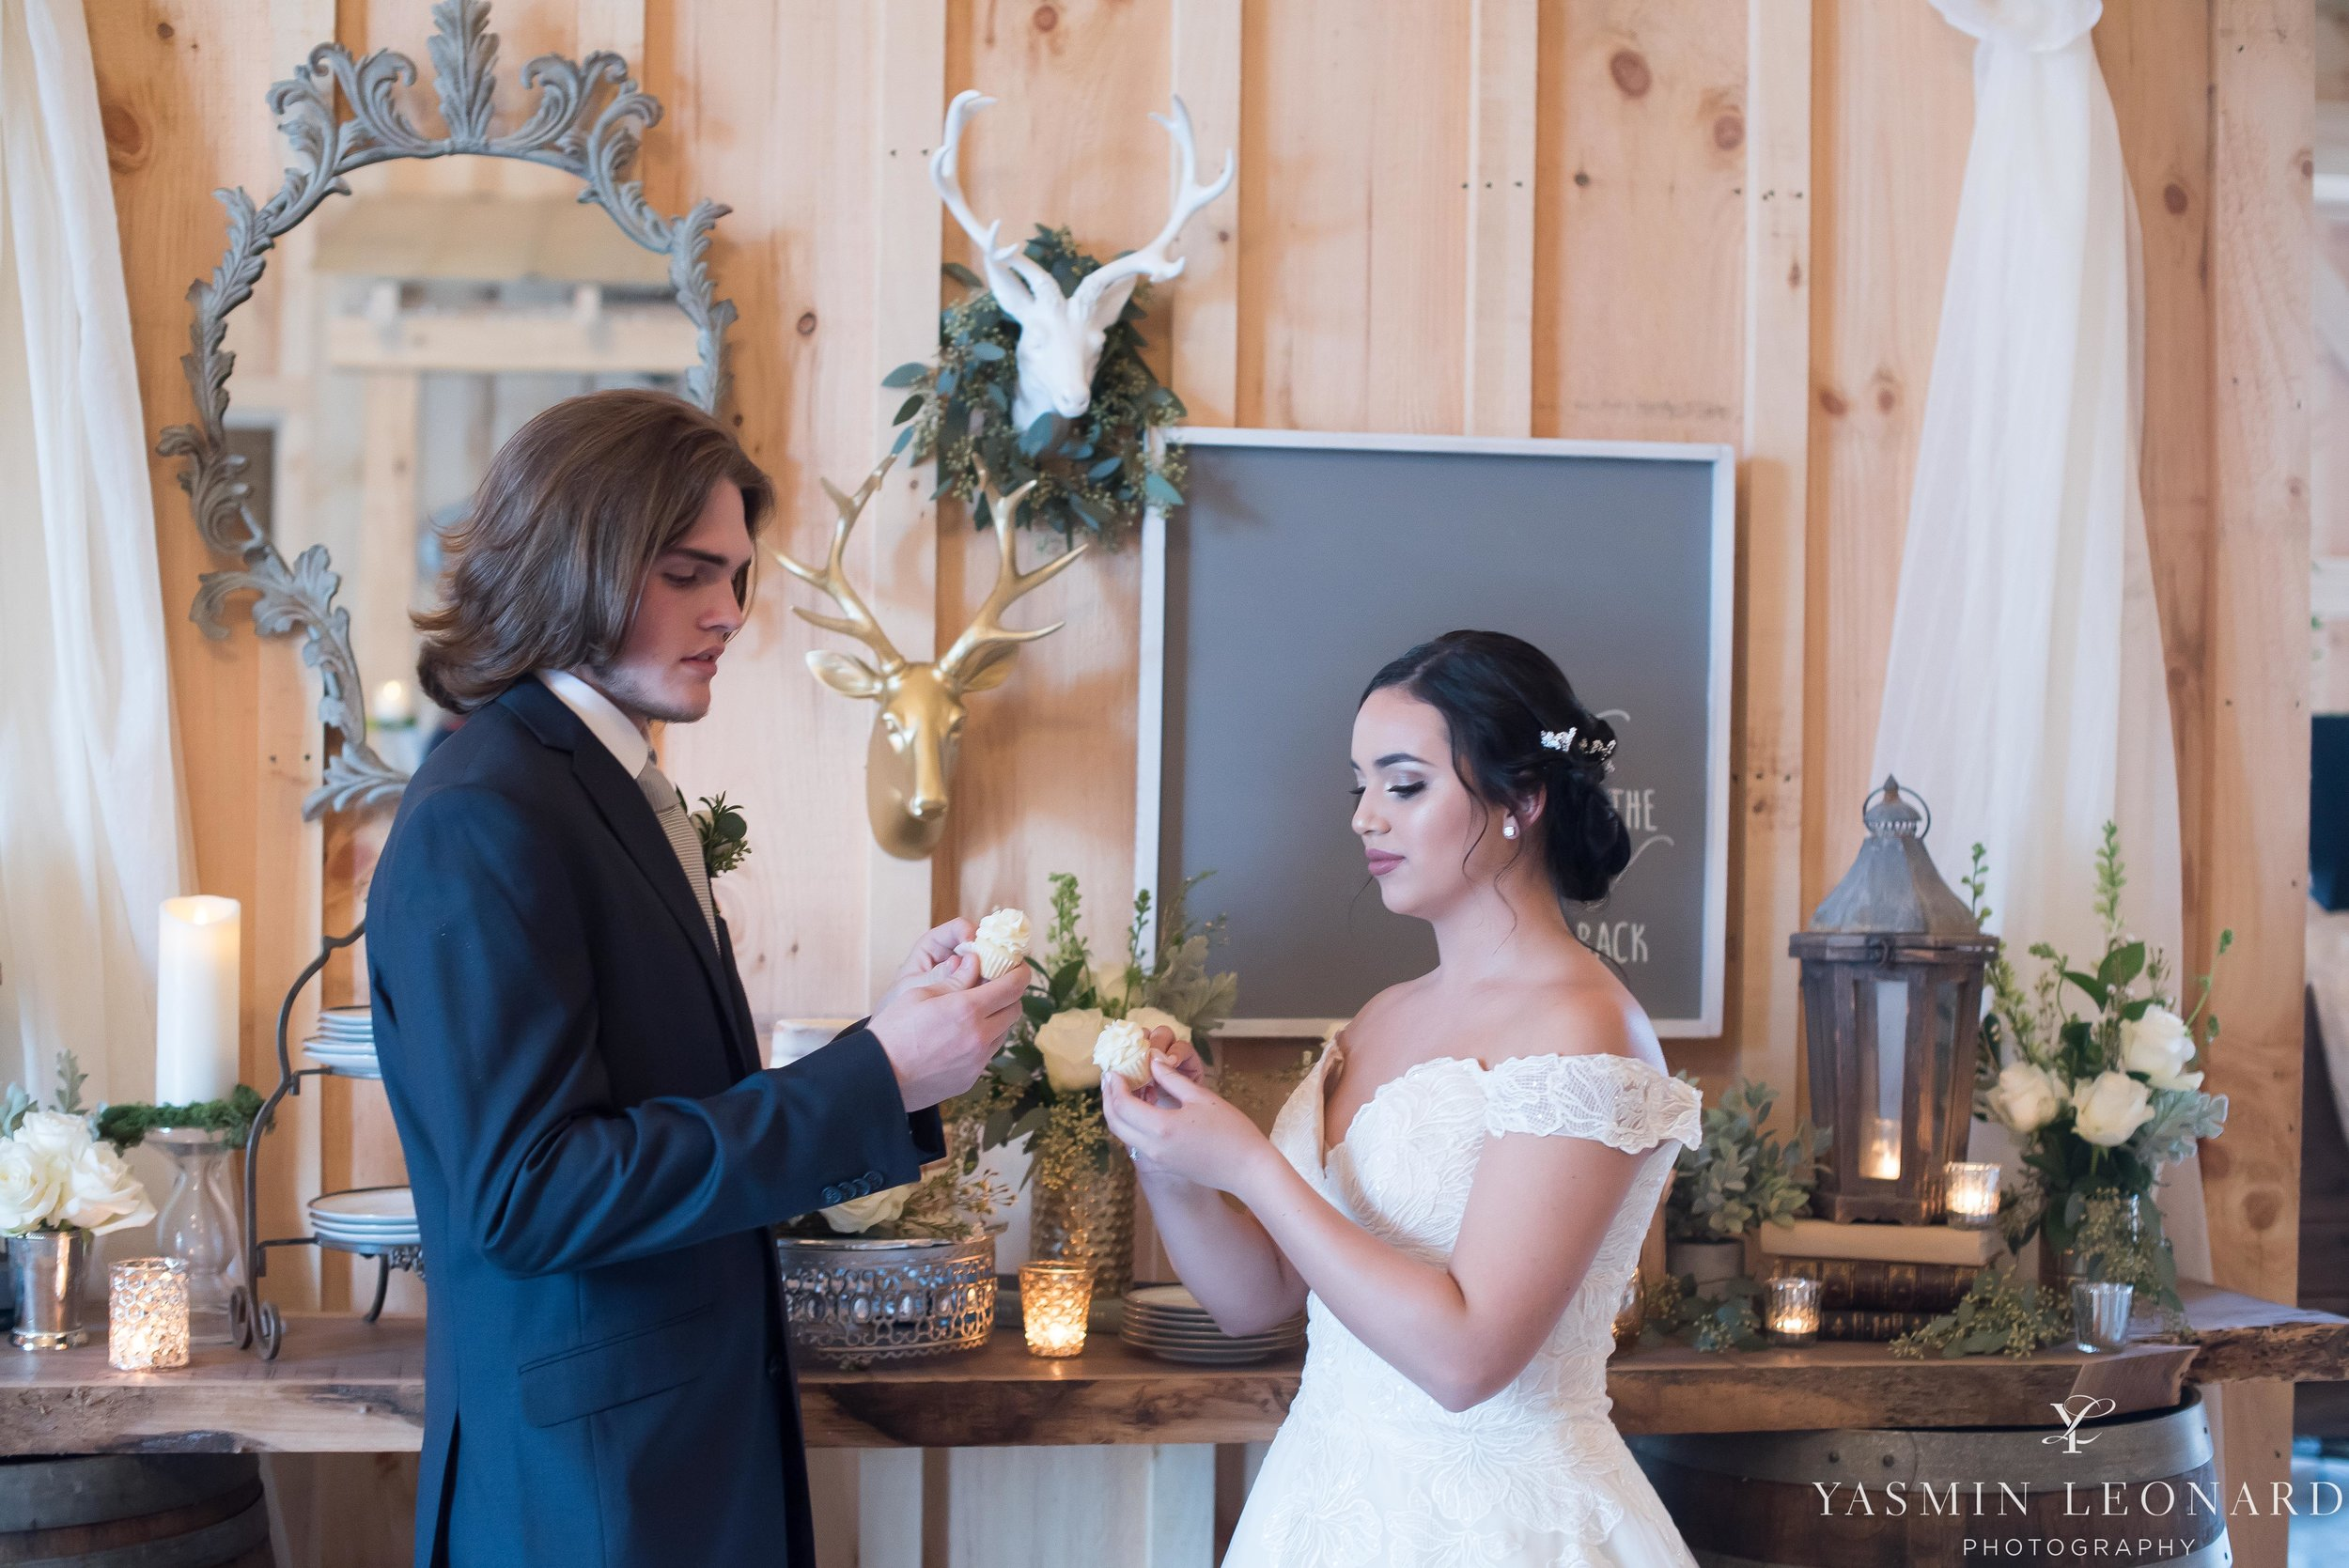 Old Homeplace Vineyard - Grits and Glitter - Dashing Dames Bridal Boutique - Just Priceless - Yasmin Leonard Photography - High Point Weddings - NC Weddings - NC Wedding Venues - High Point Jewelers - NC Wines - NC Vineyards - Cupcake Cuties-75.jpg